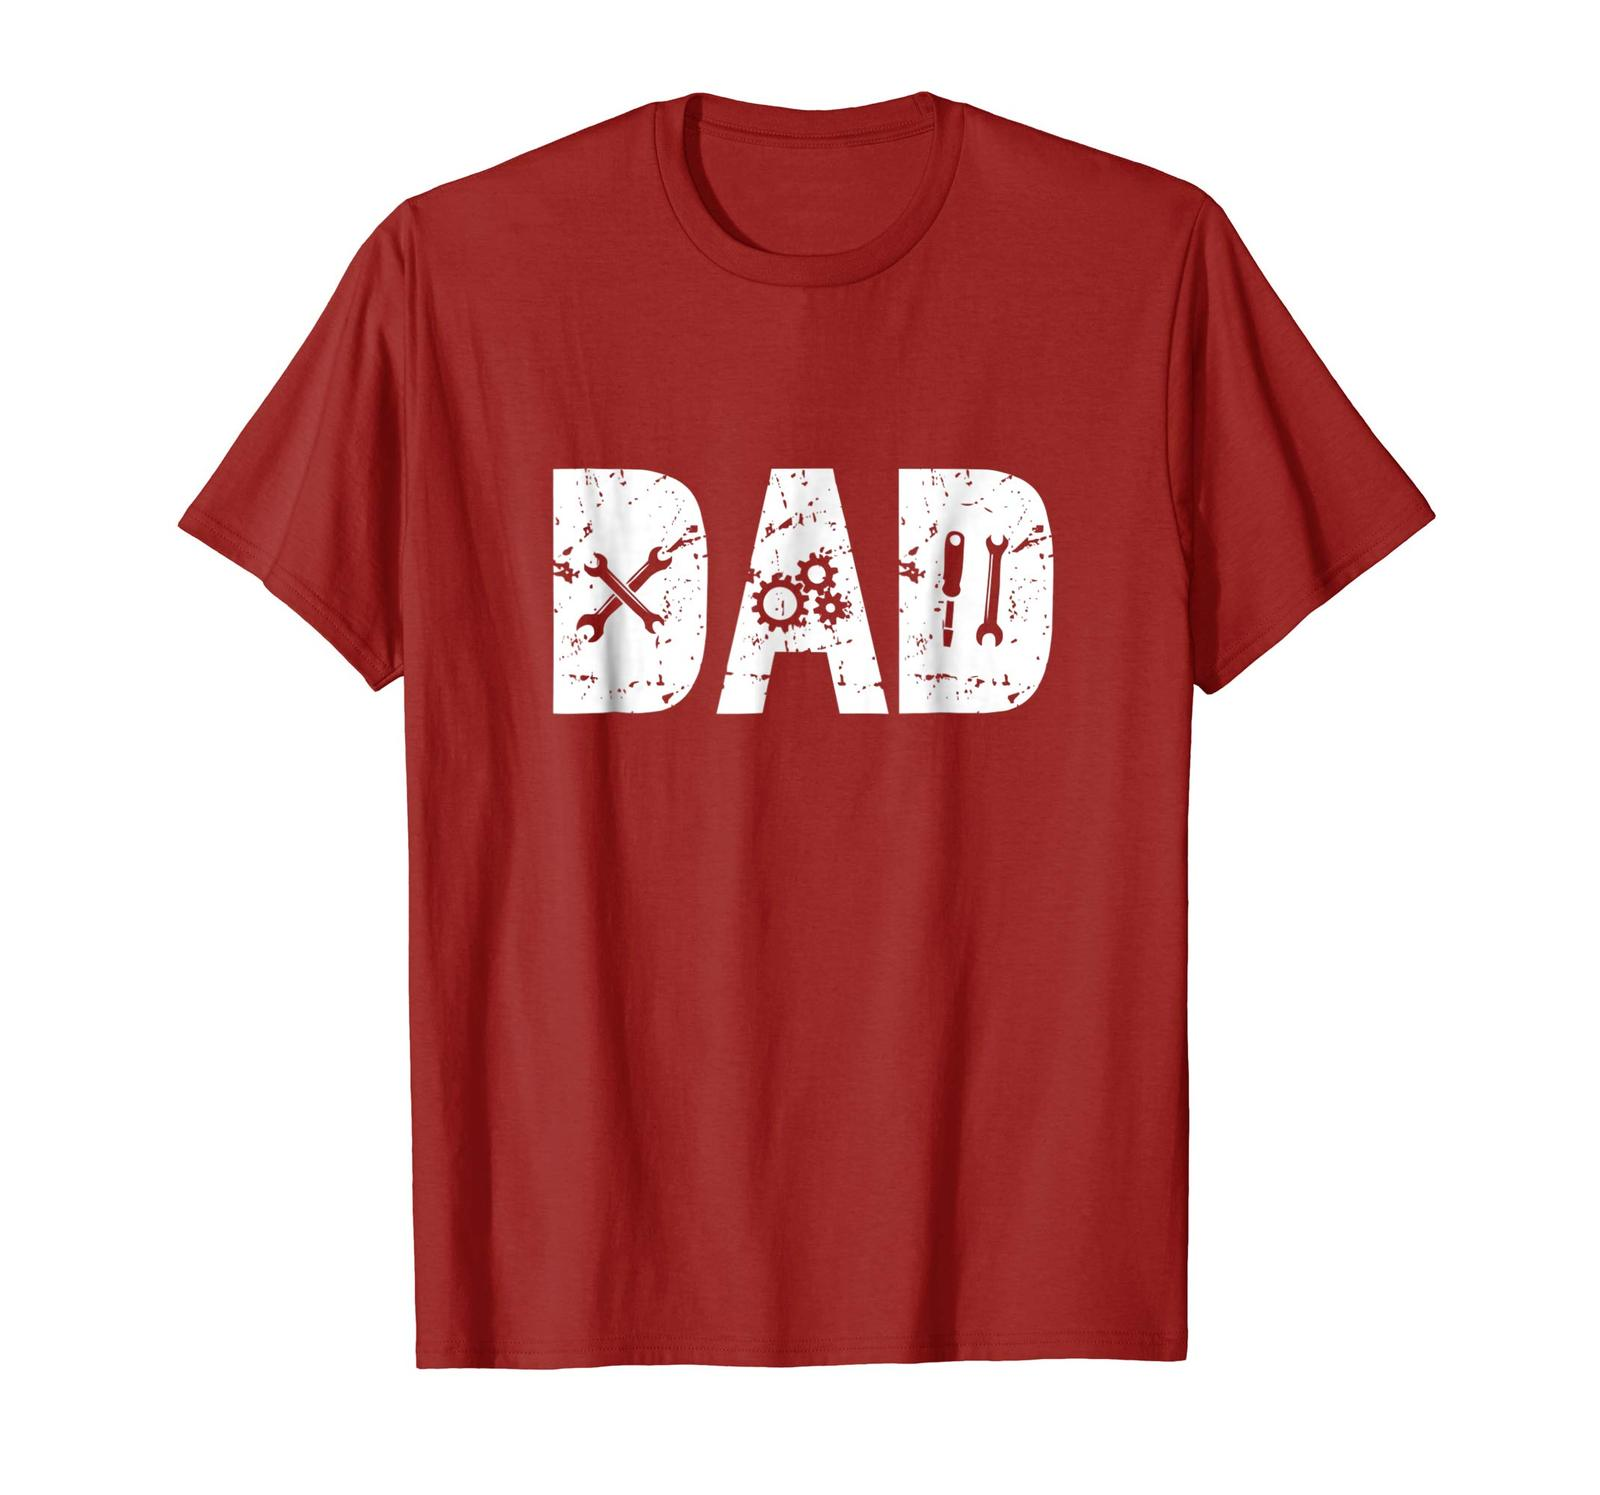 Dad Shirts - Funny Dad Gift Mechanic Shirts for Men Fathers Day 2018 Tee Men image 2